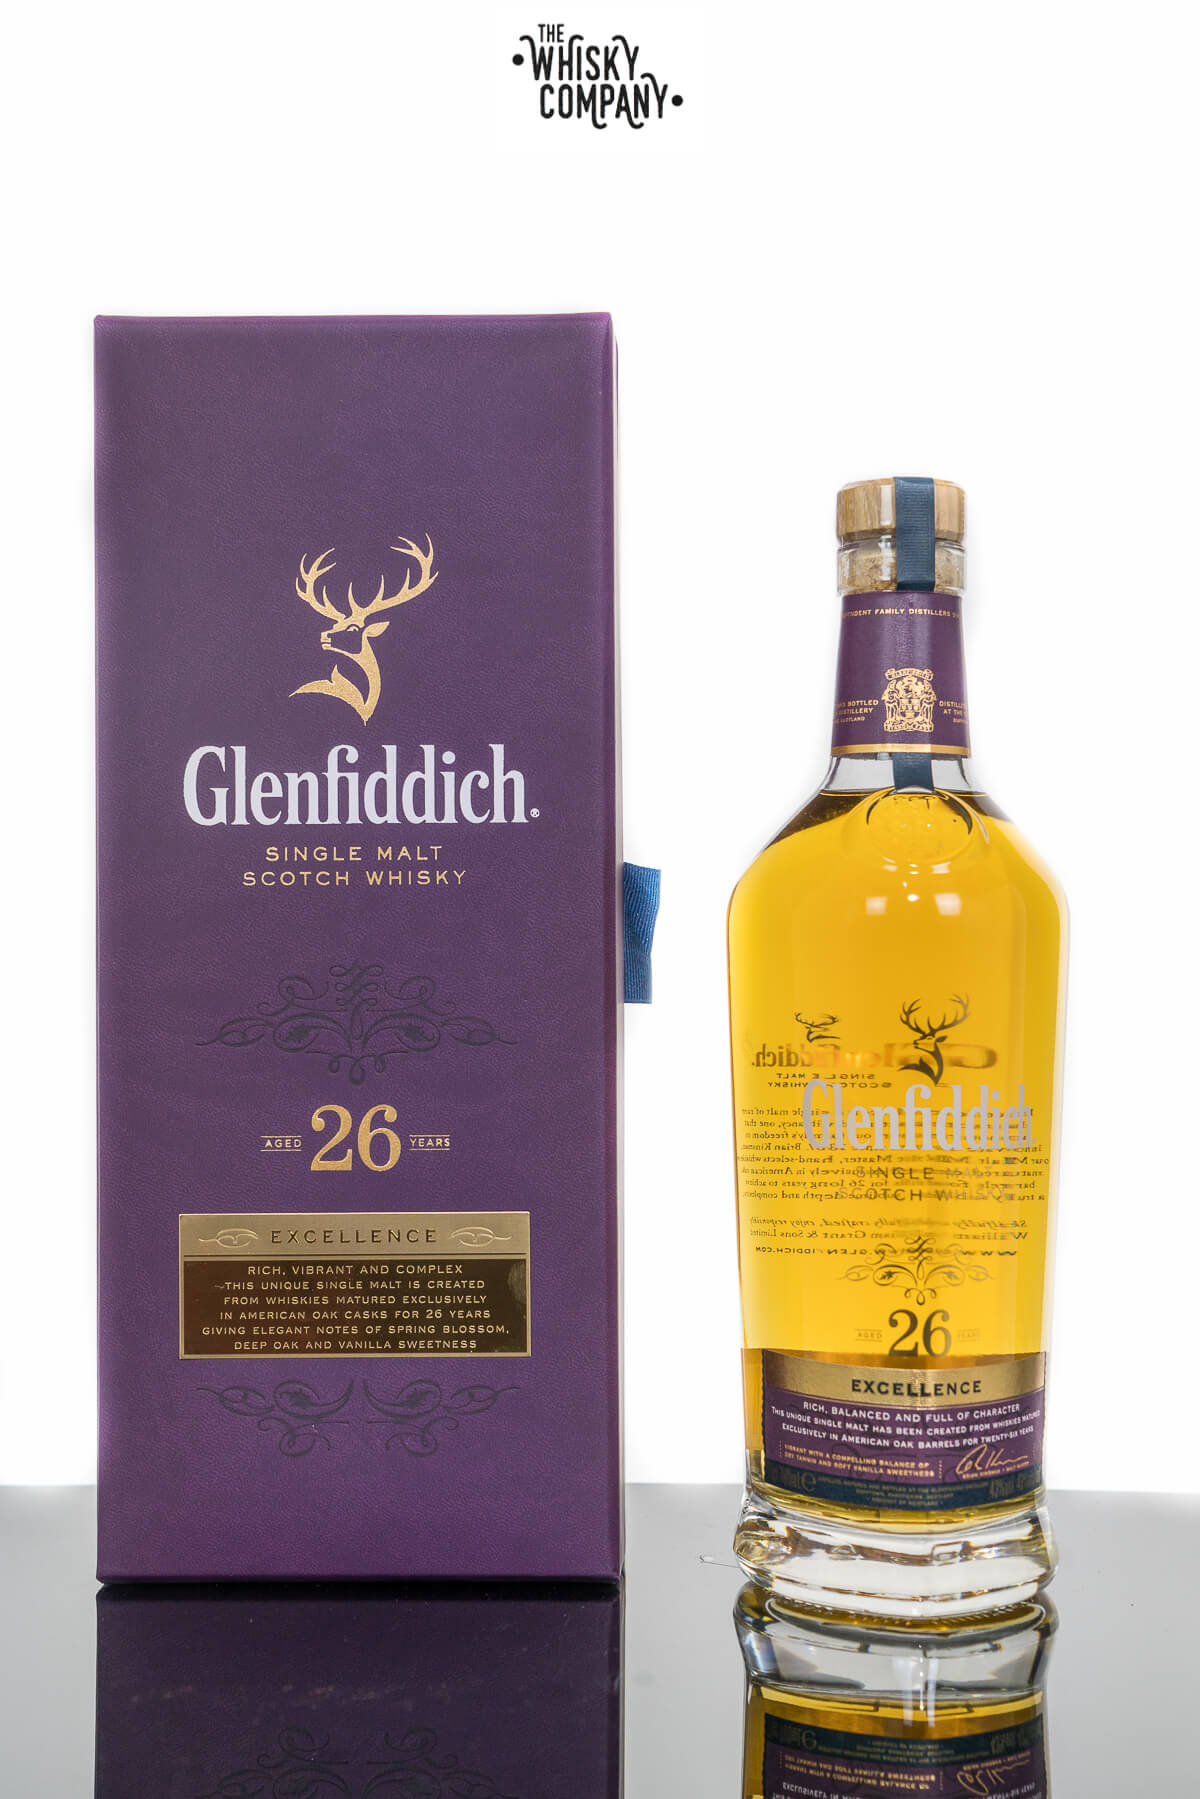 Glenfiddich Excellence 26 Years Old Single Malt Scotch Whisky (700ml)